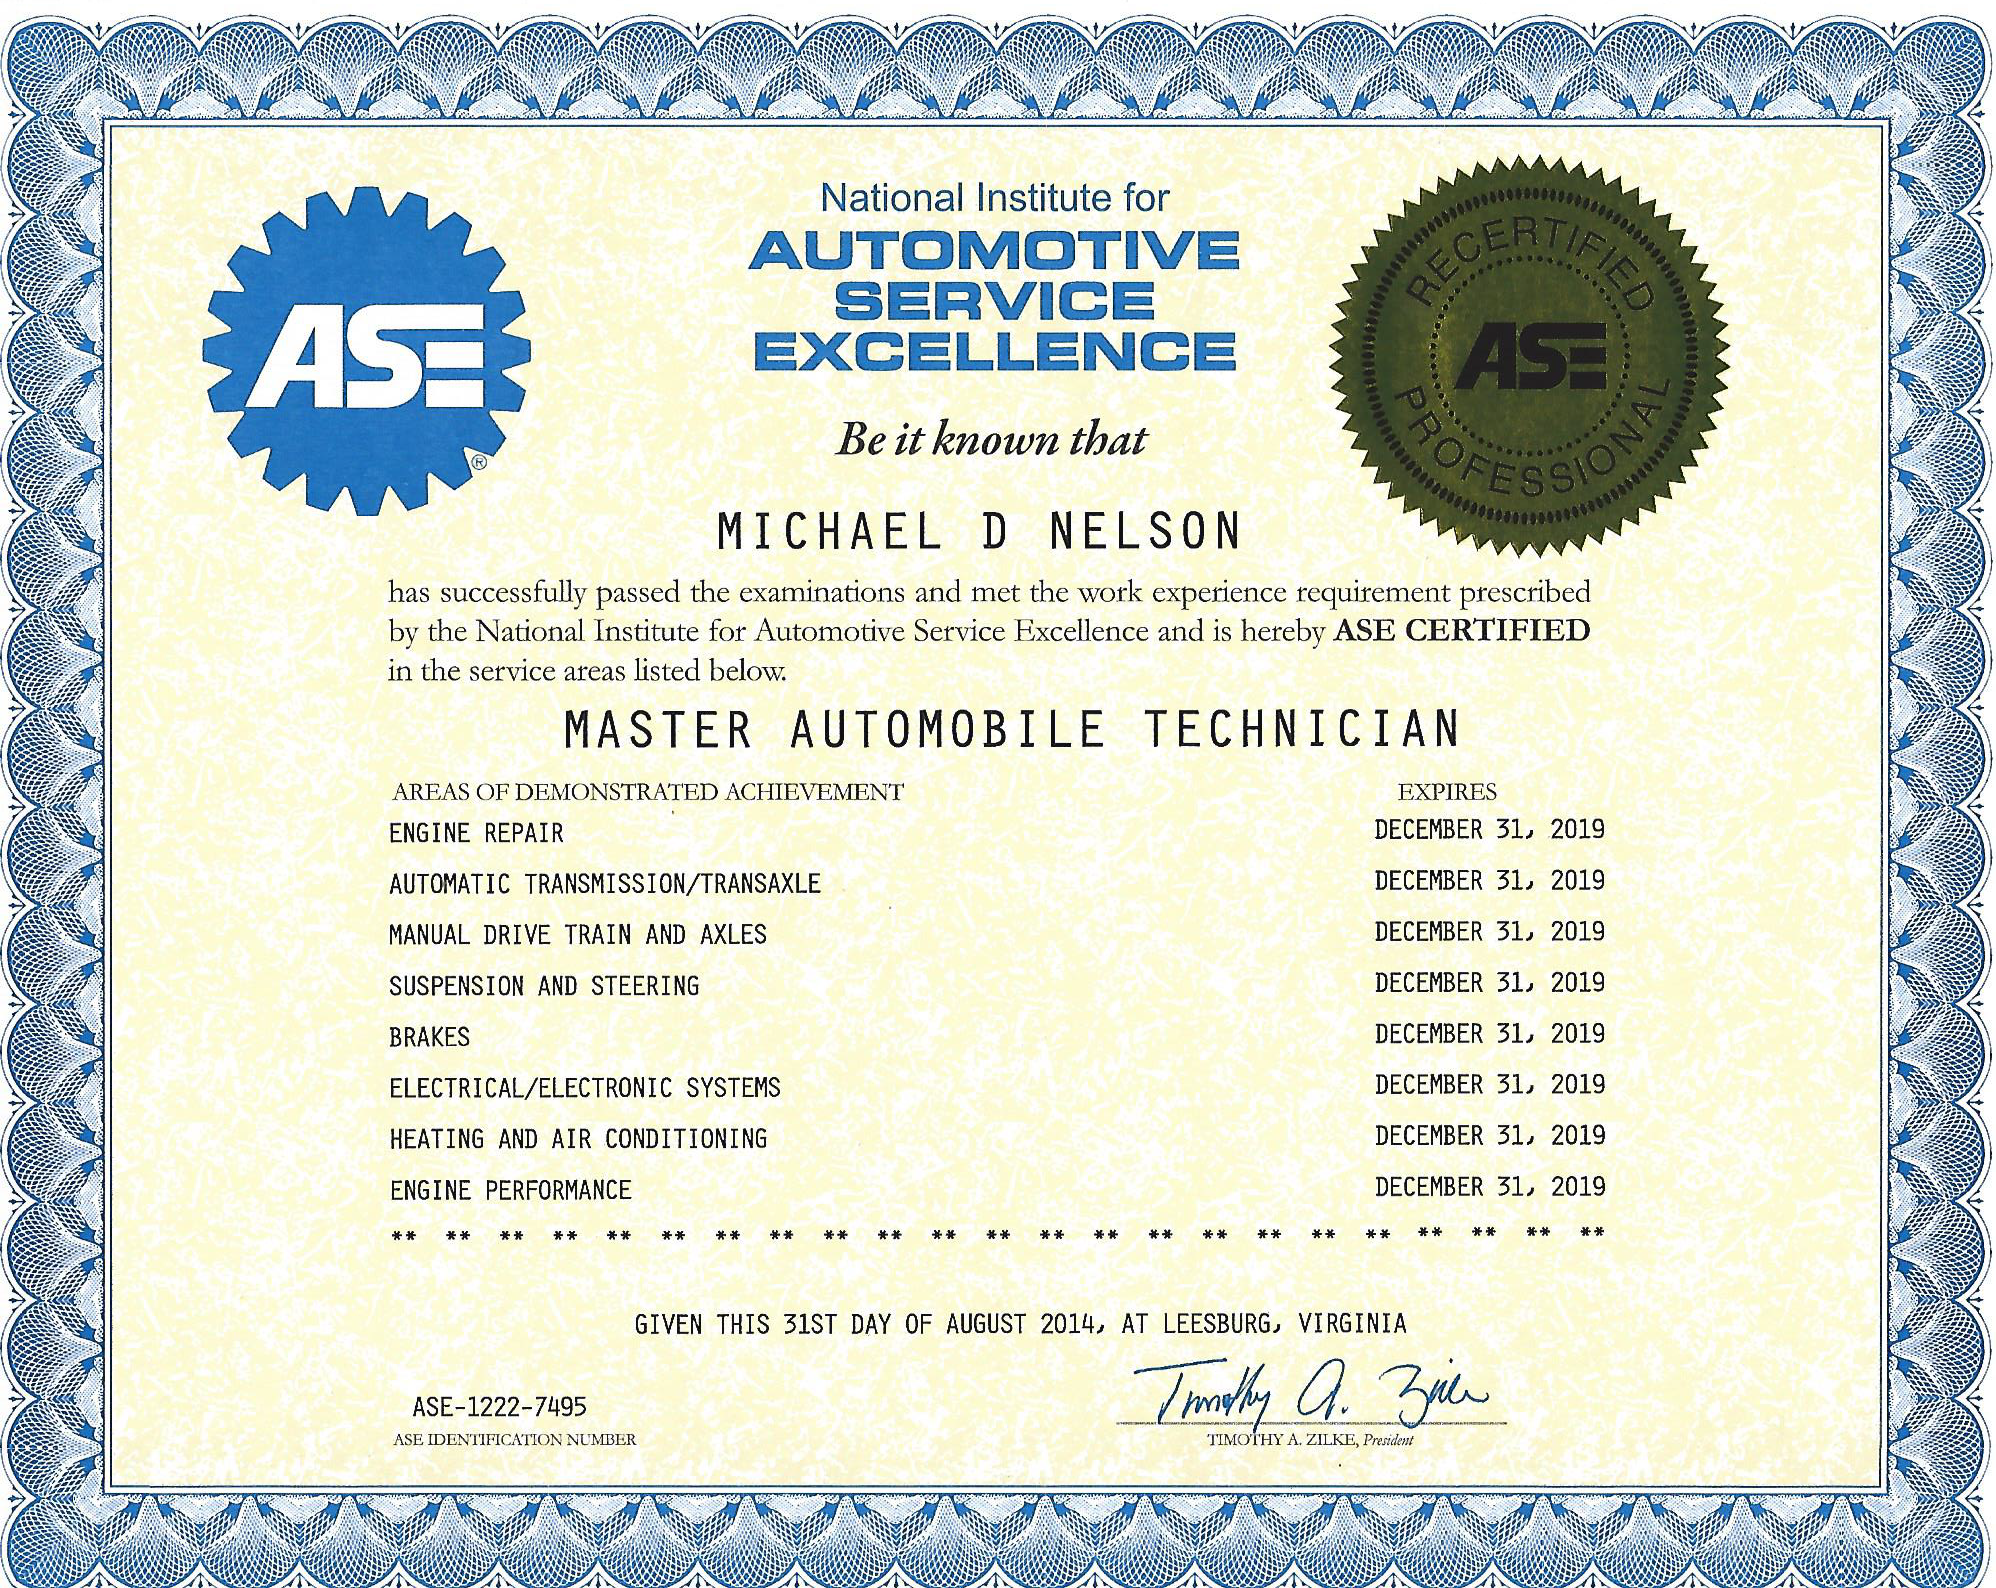 Mikes garage llc certifications general motors certifications are different than ase certifications in that they are hands on tests not multiple choice like ase 1betcityfo Image collections